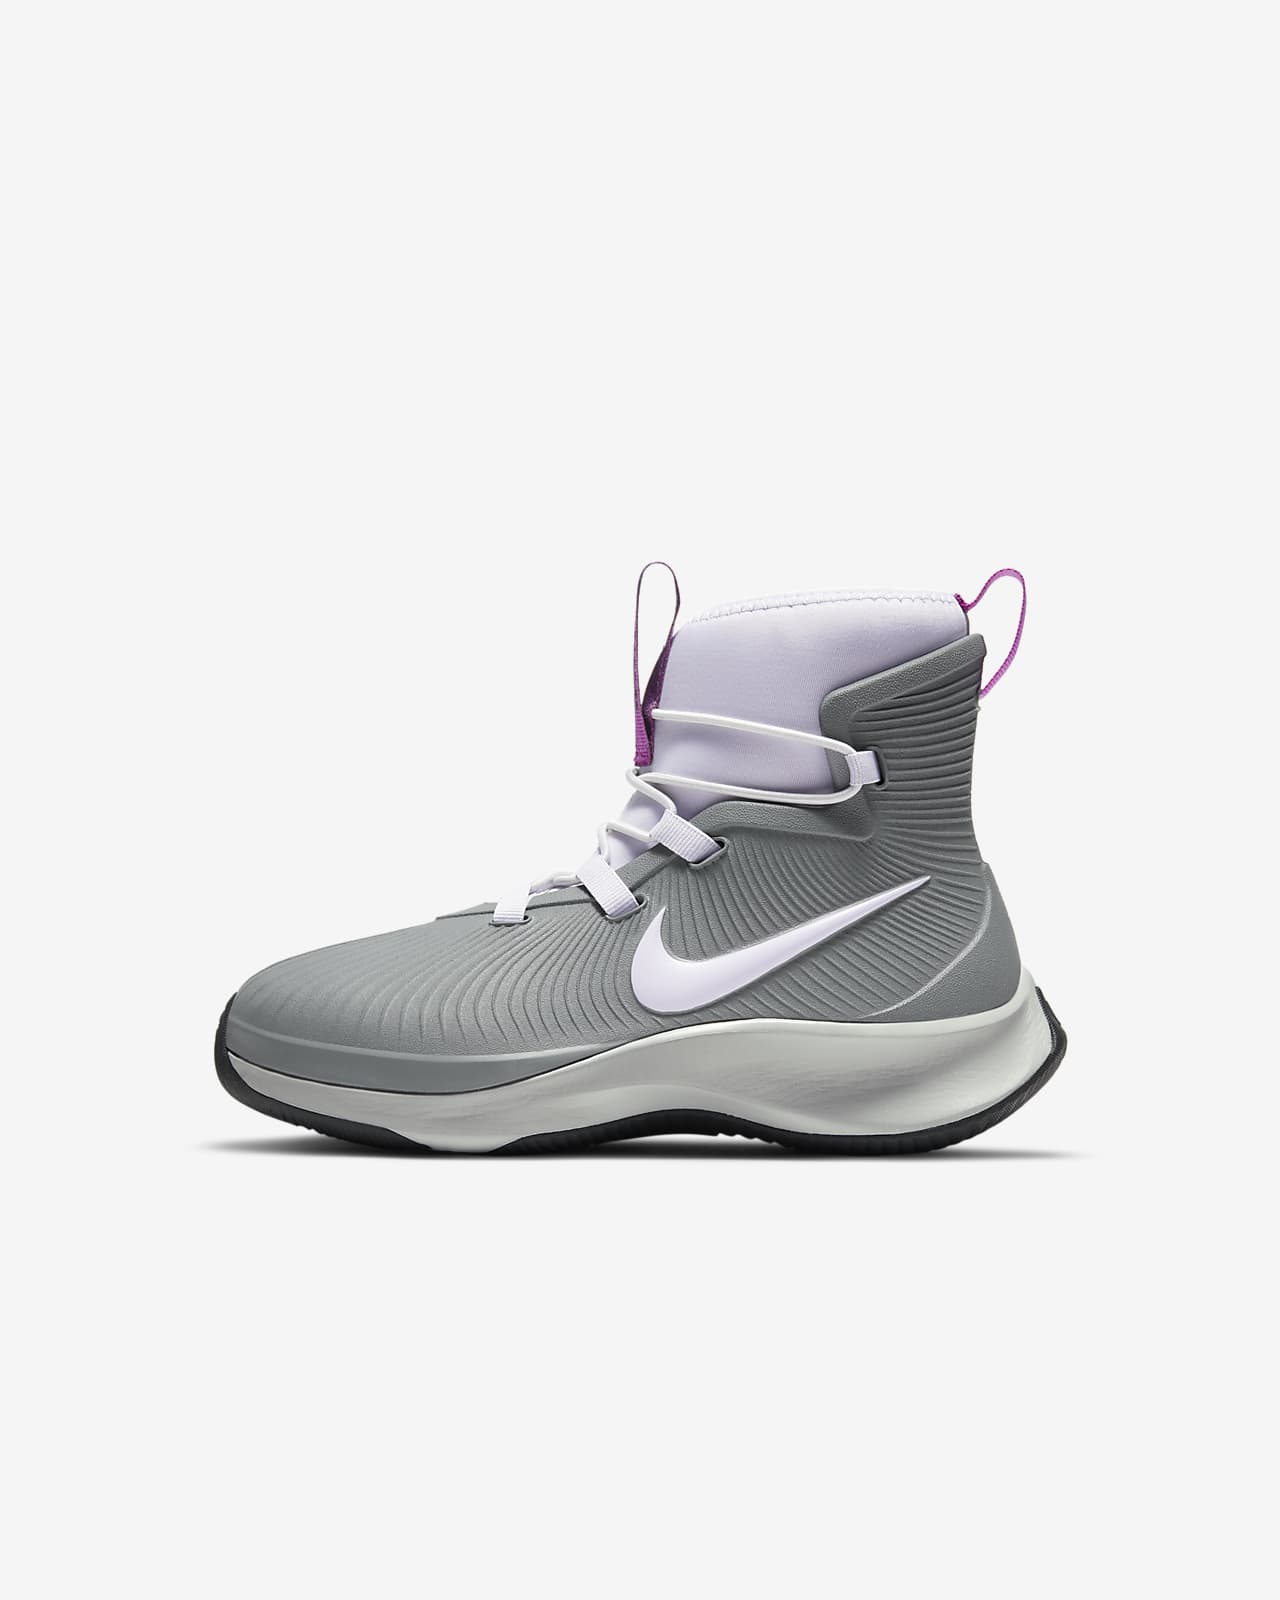 Nike Binzie Boot (PS) 幼童运动童鞋